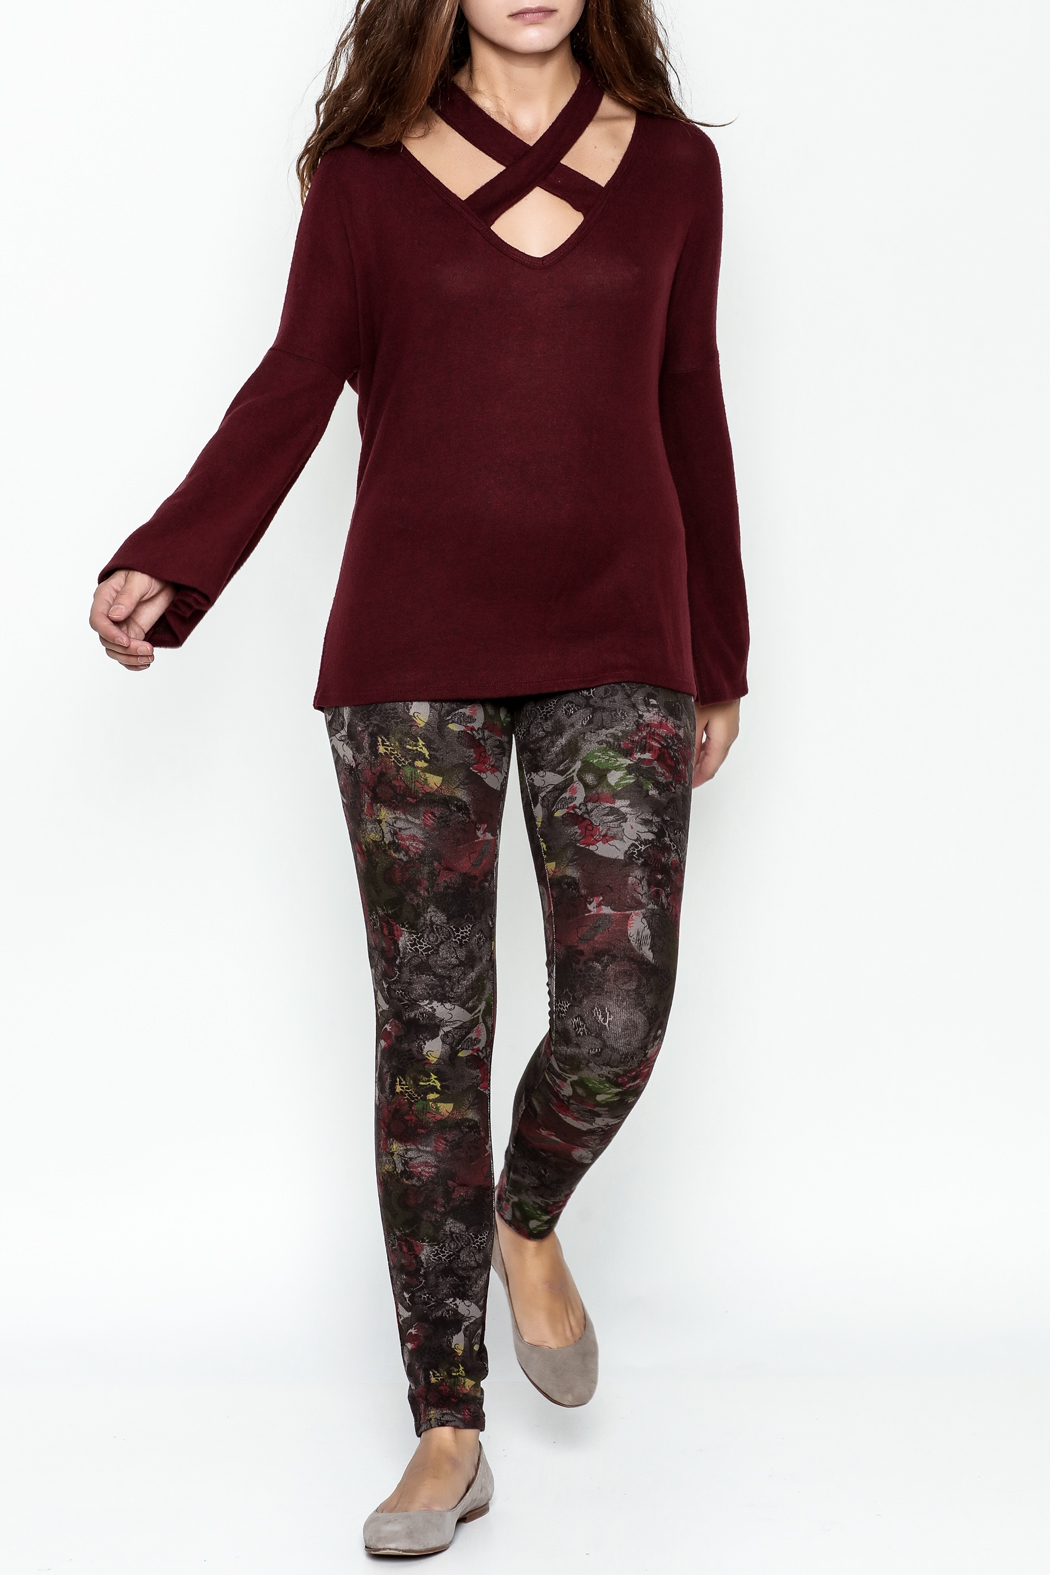 Silver Gate Burgundy Crisscross Top - Side Cropped Image